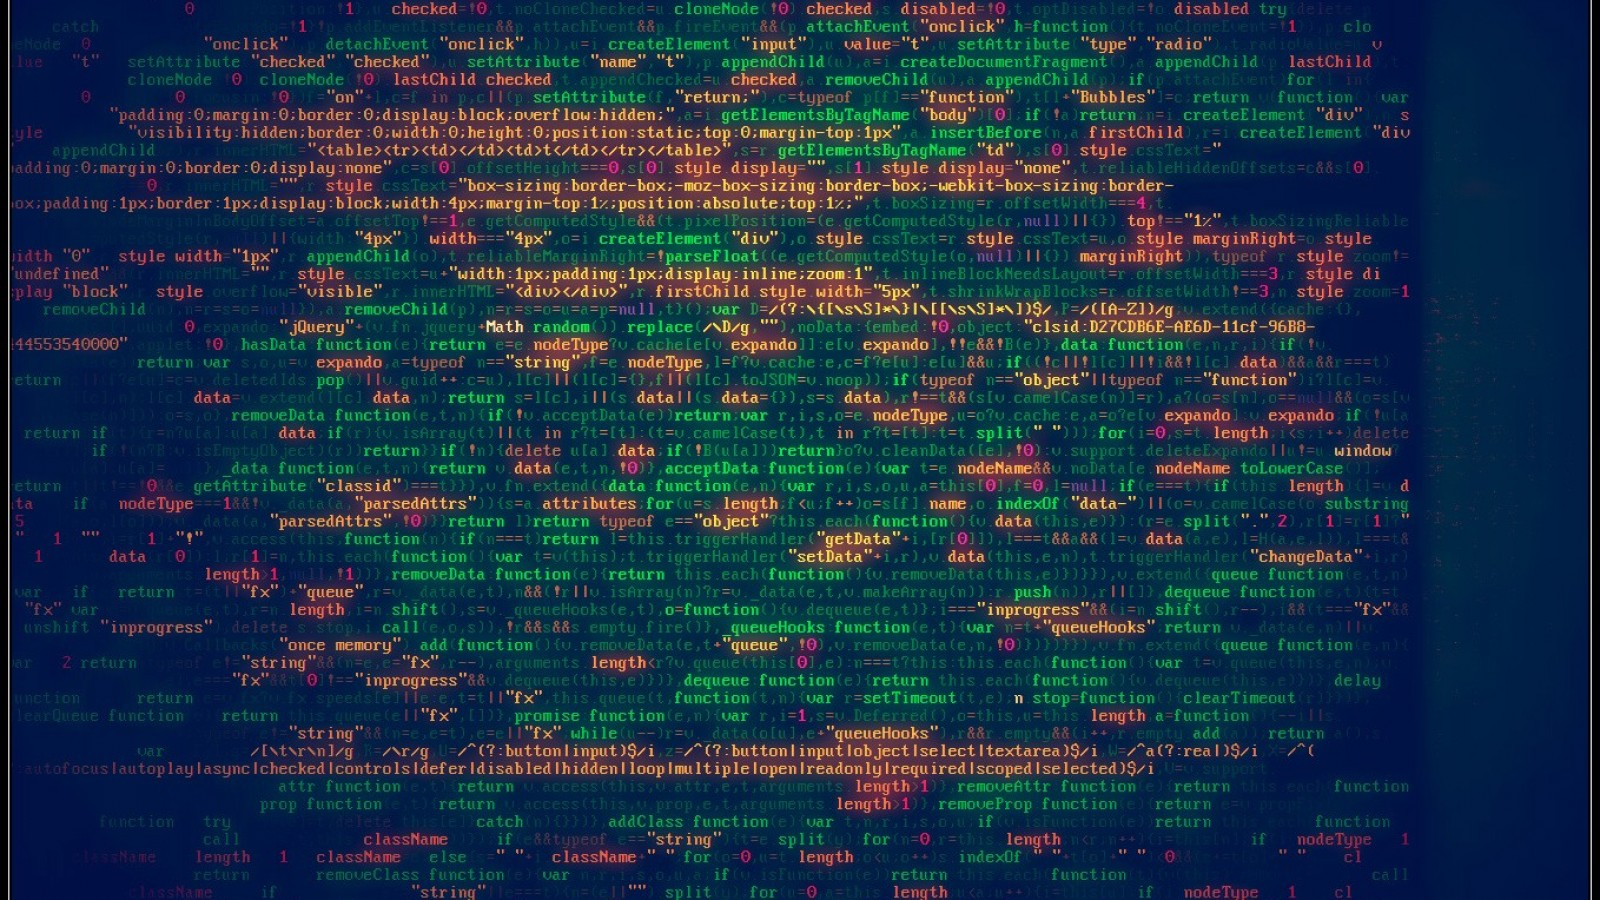 37 Programmer Code Wallpaper Backgrounds Download 1600x900